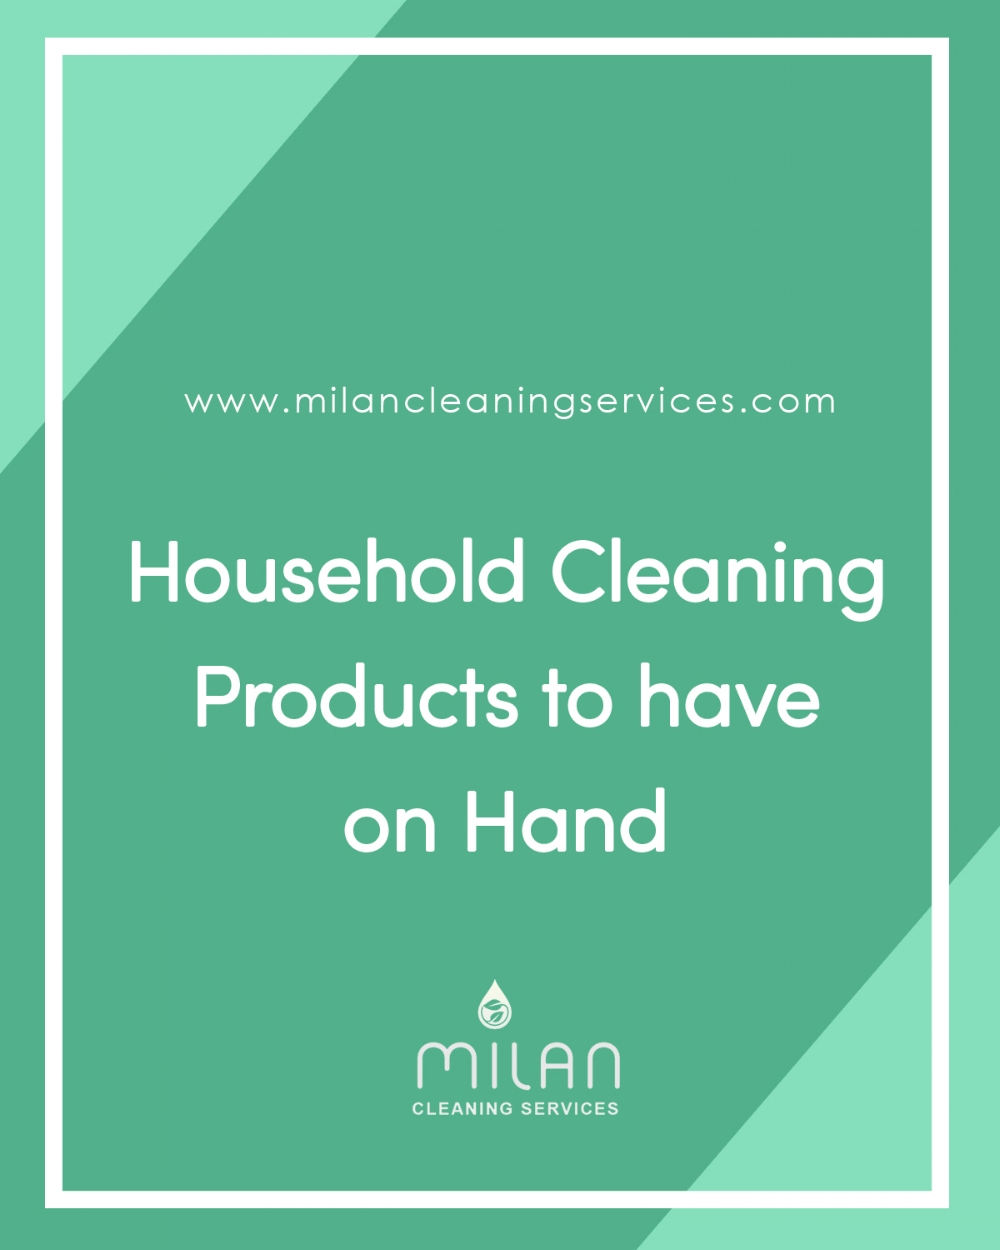 Household-cleaning-products.jpg